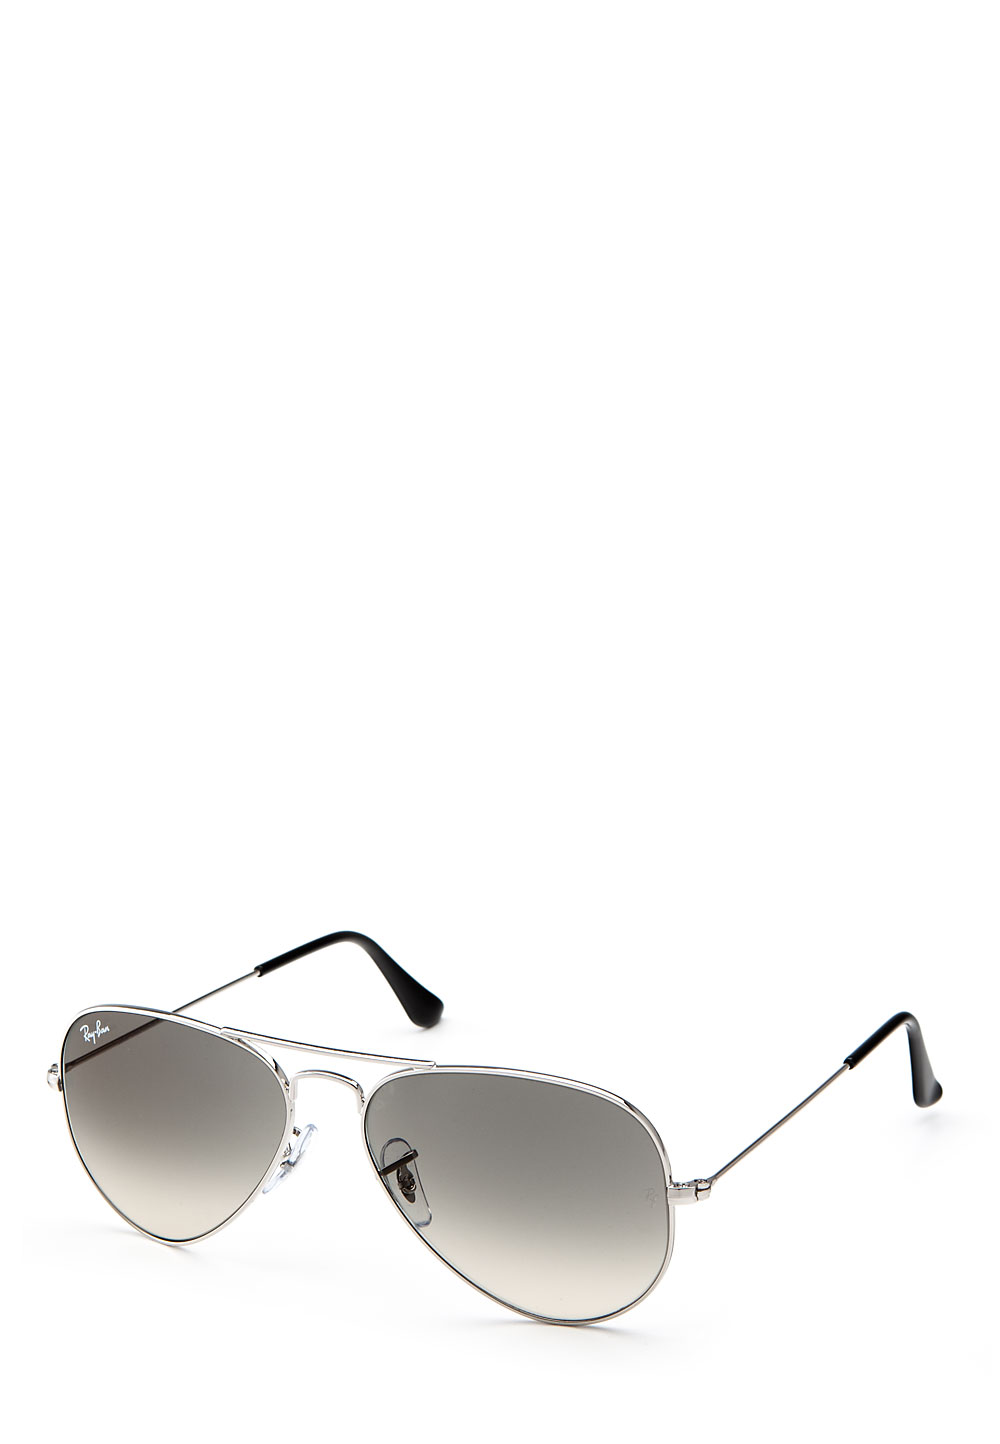 Ray-Ban Sonnenbrille Aviator M, UV 400, golden